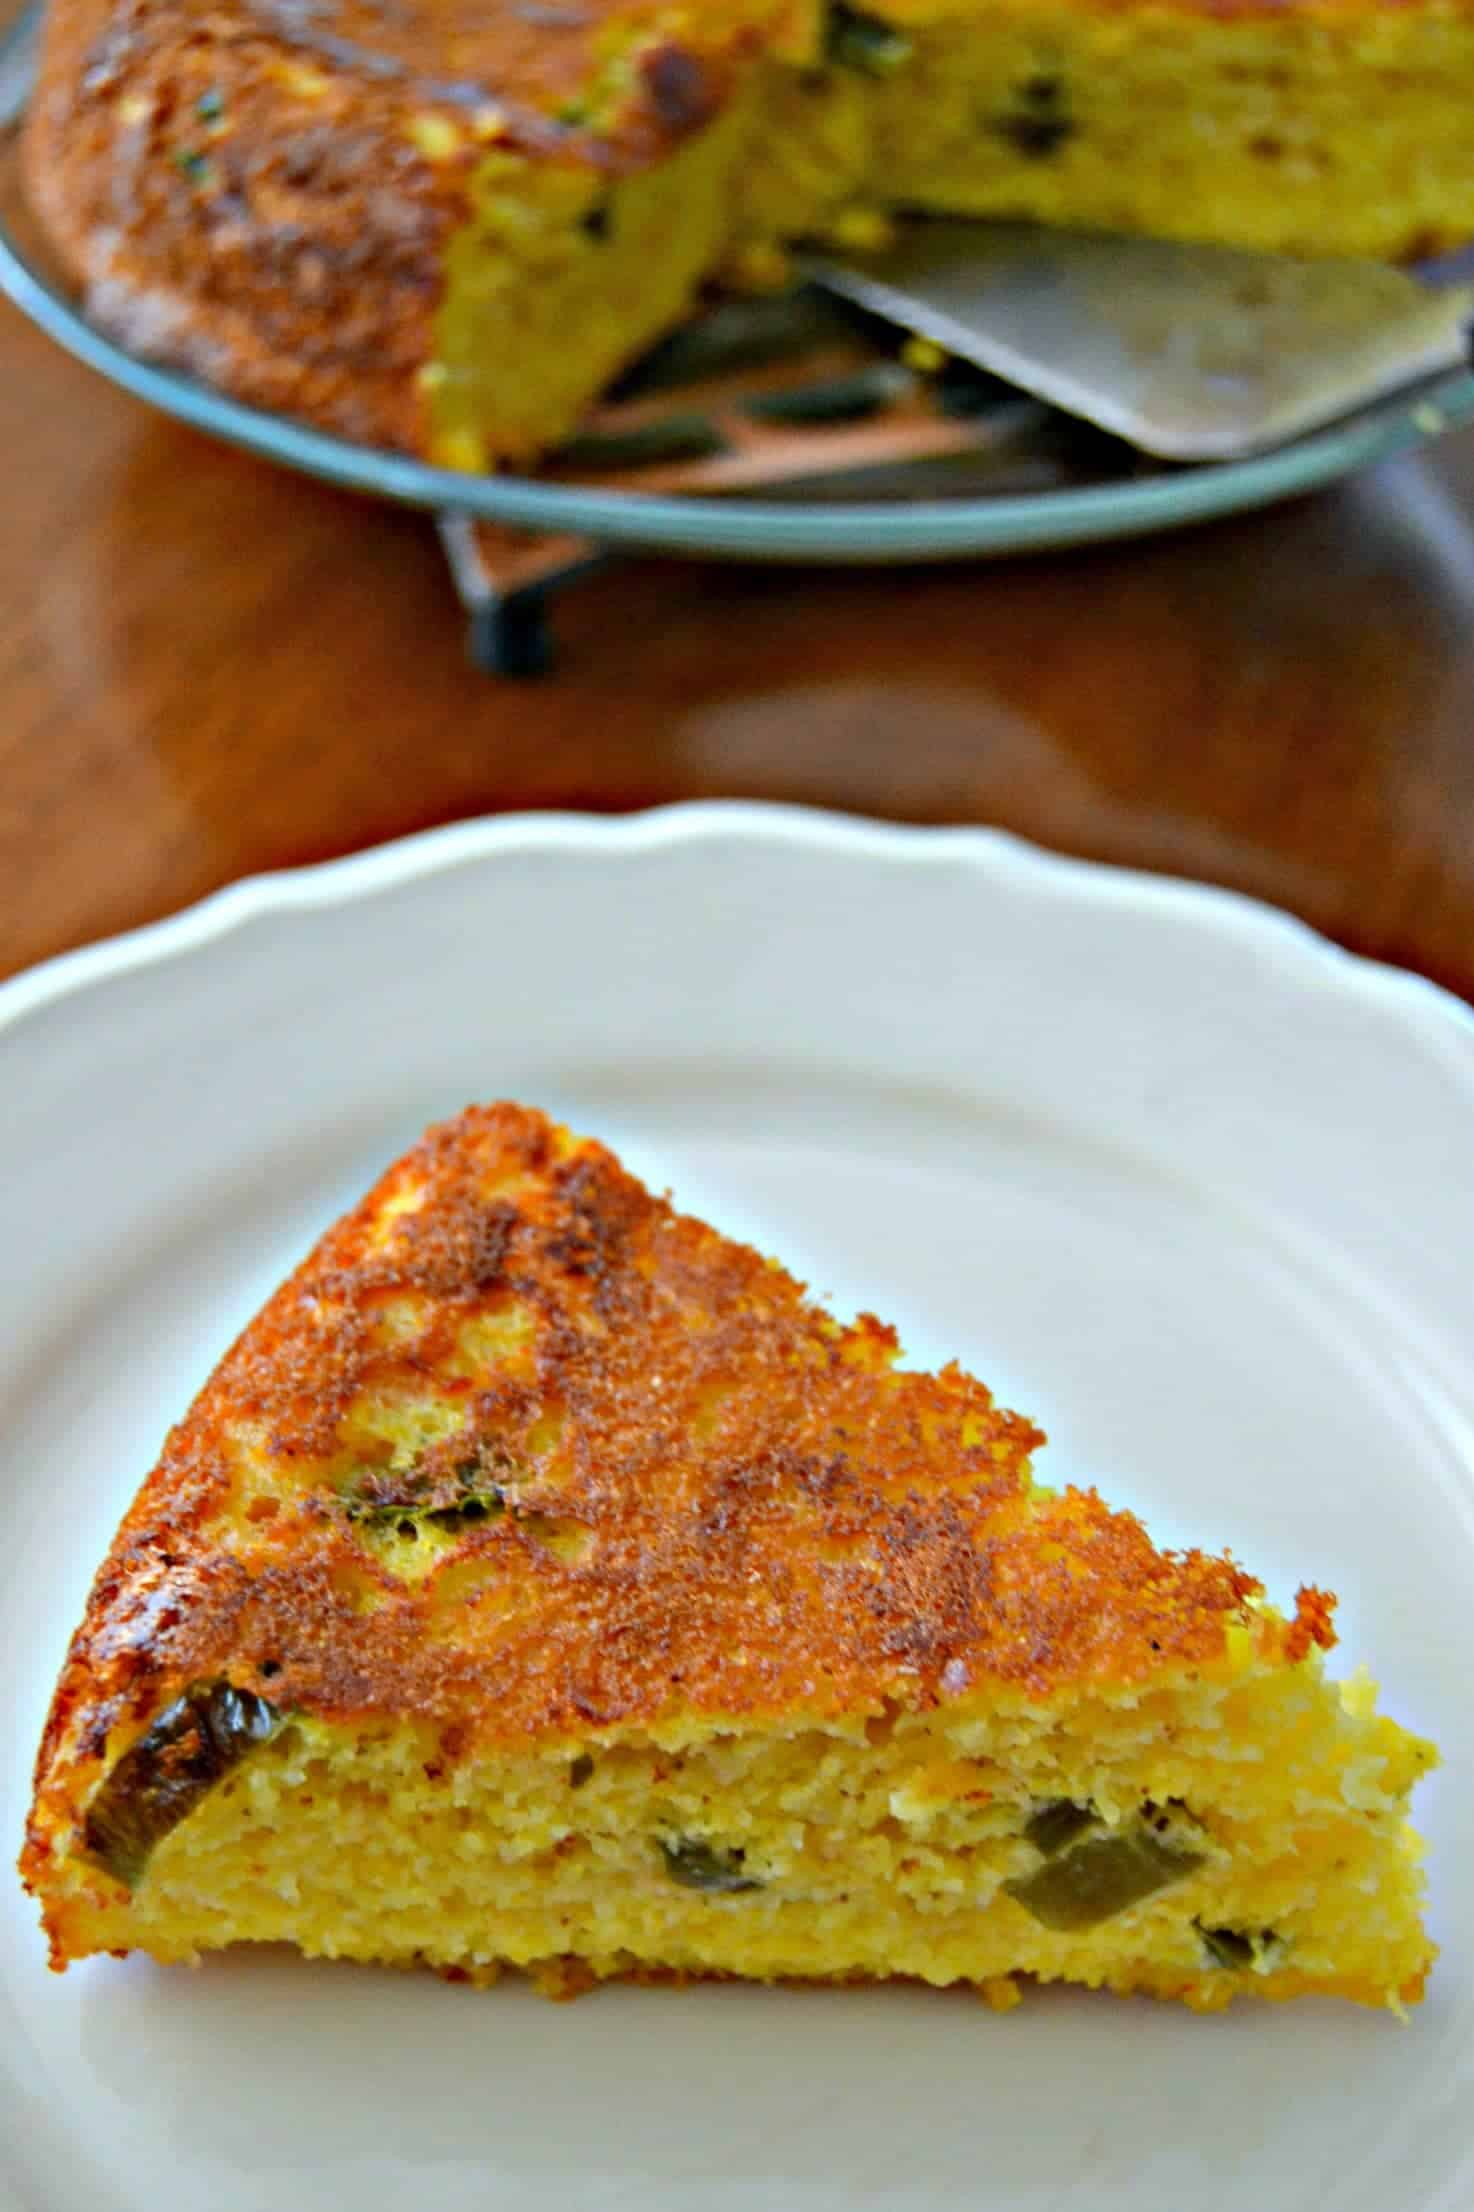 slice of cornbread made with peppers